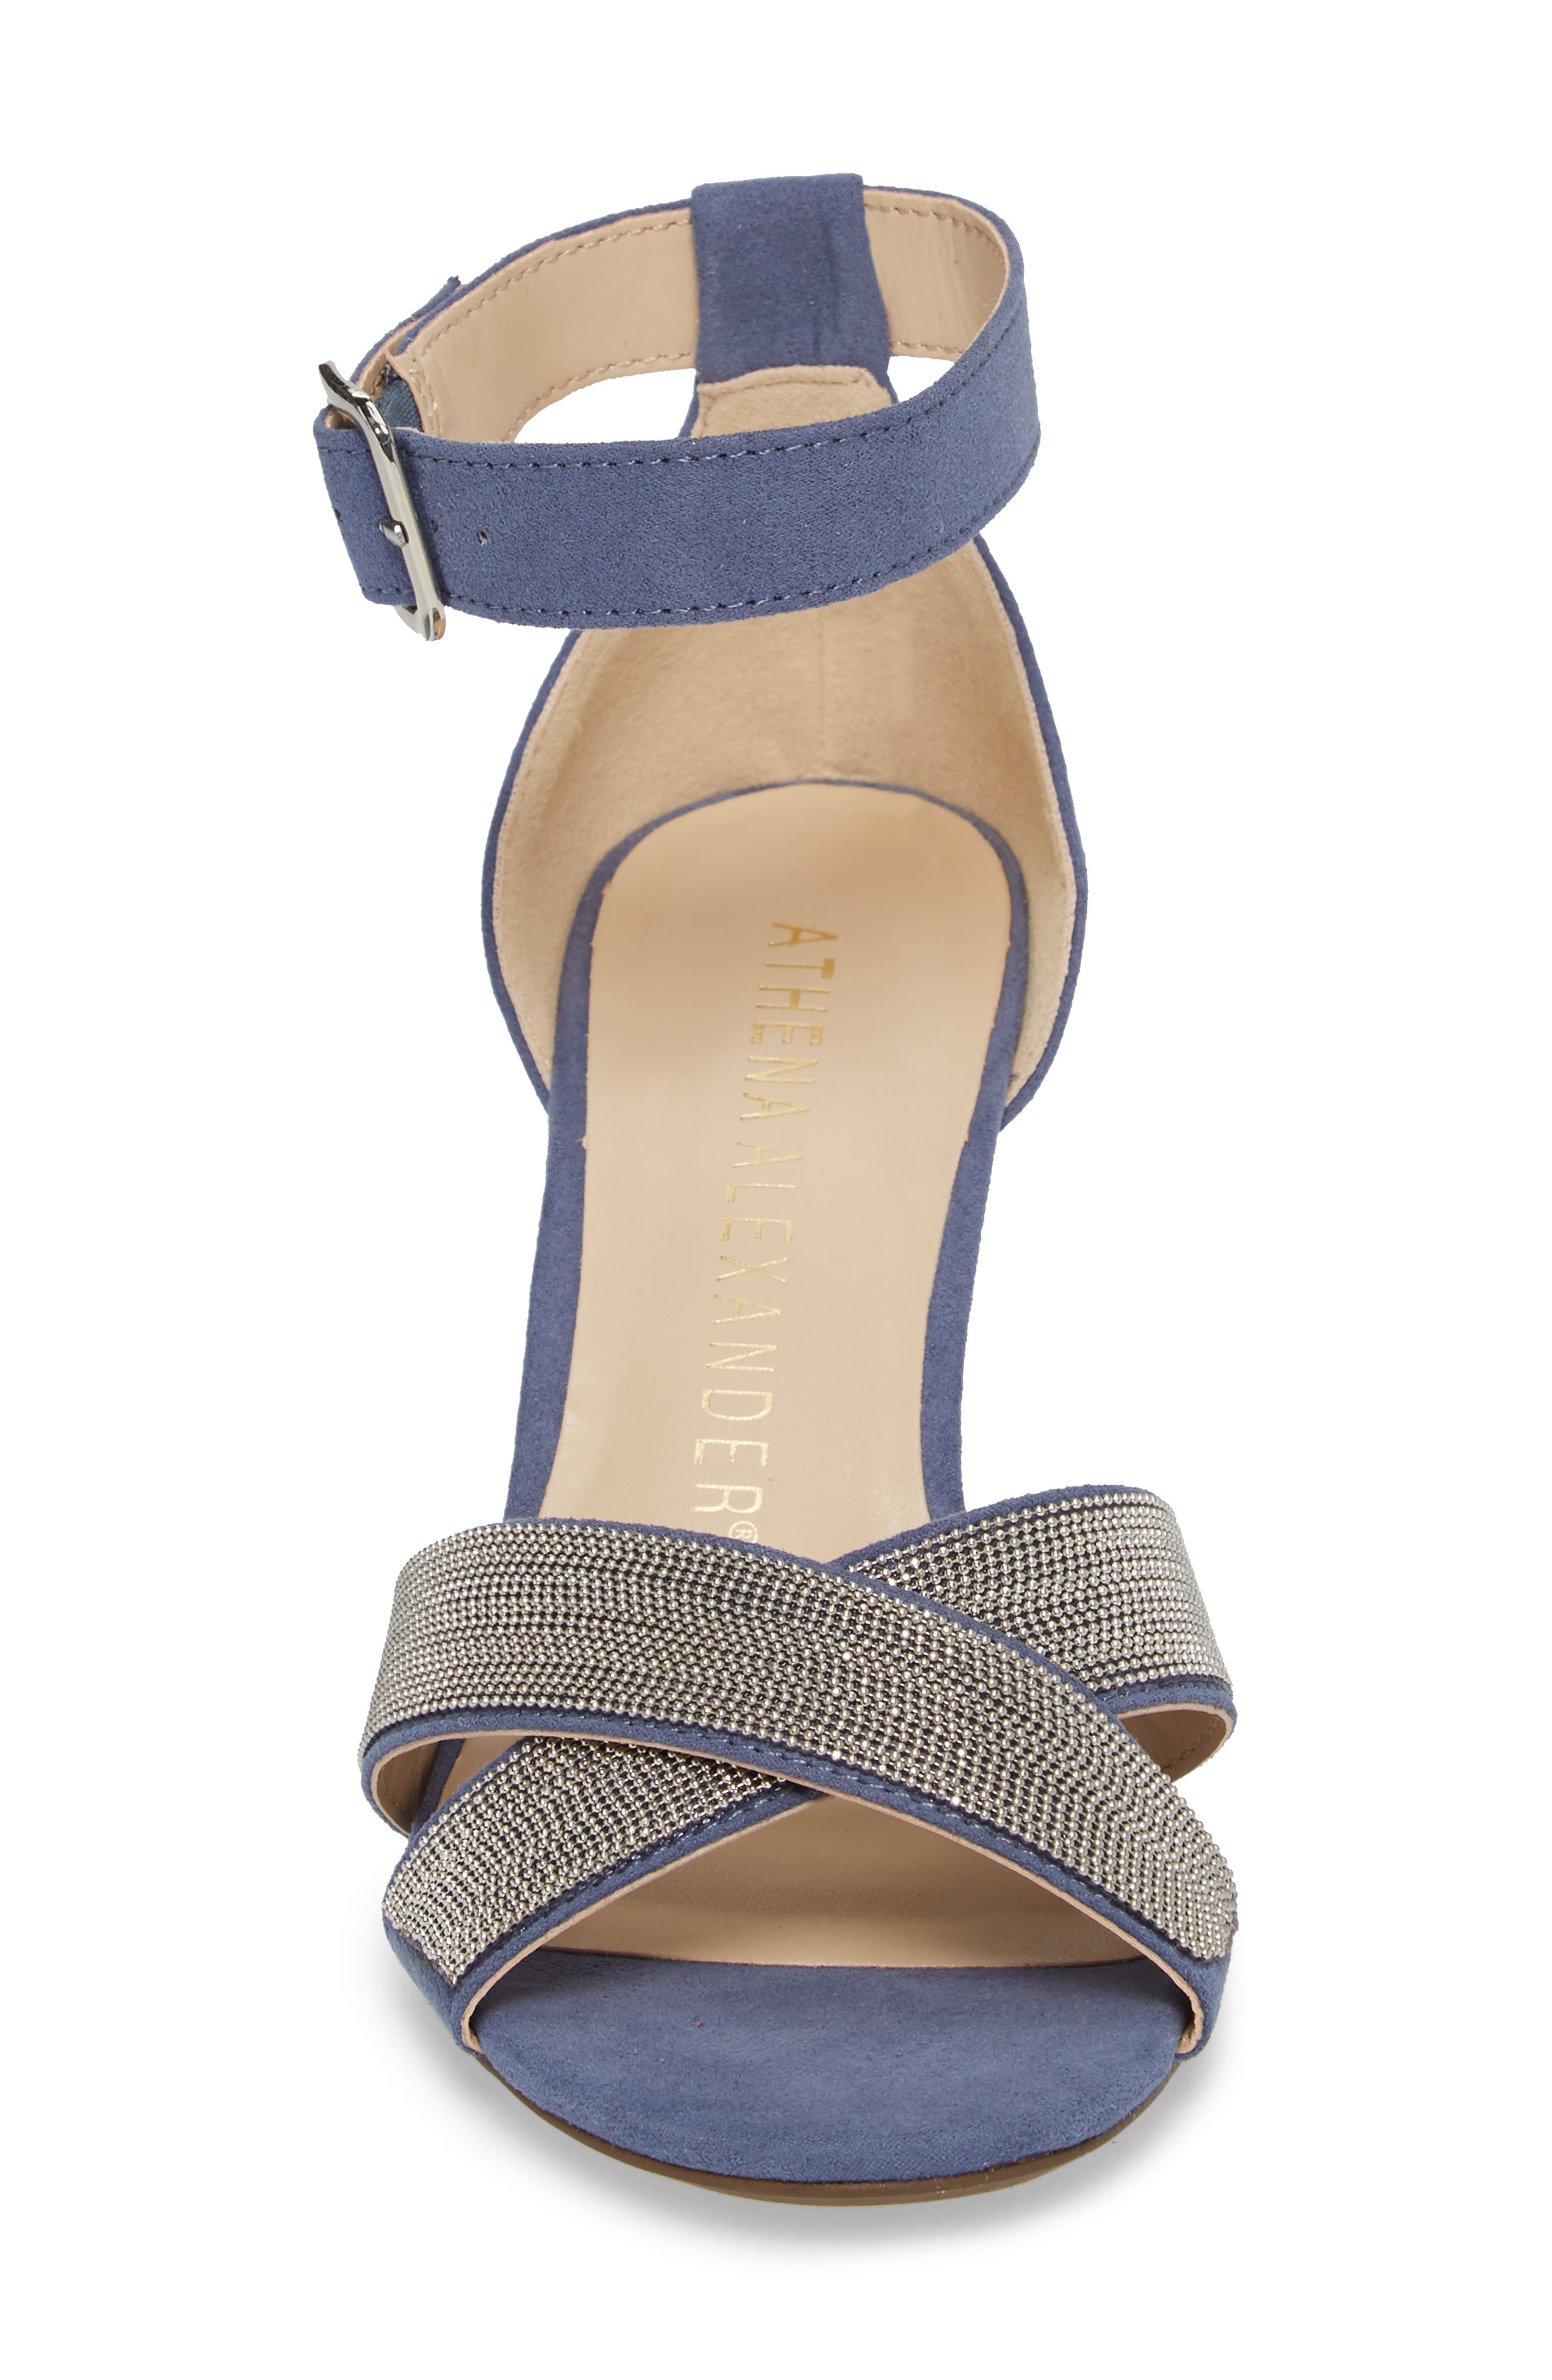 Zorra Wedge Sandal,                             Alternate thumbnail 4, color,                             Blue Suede